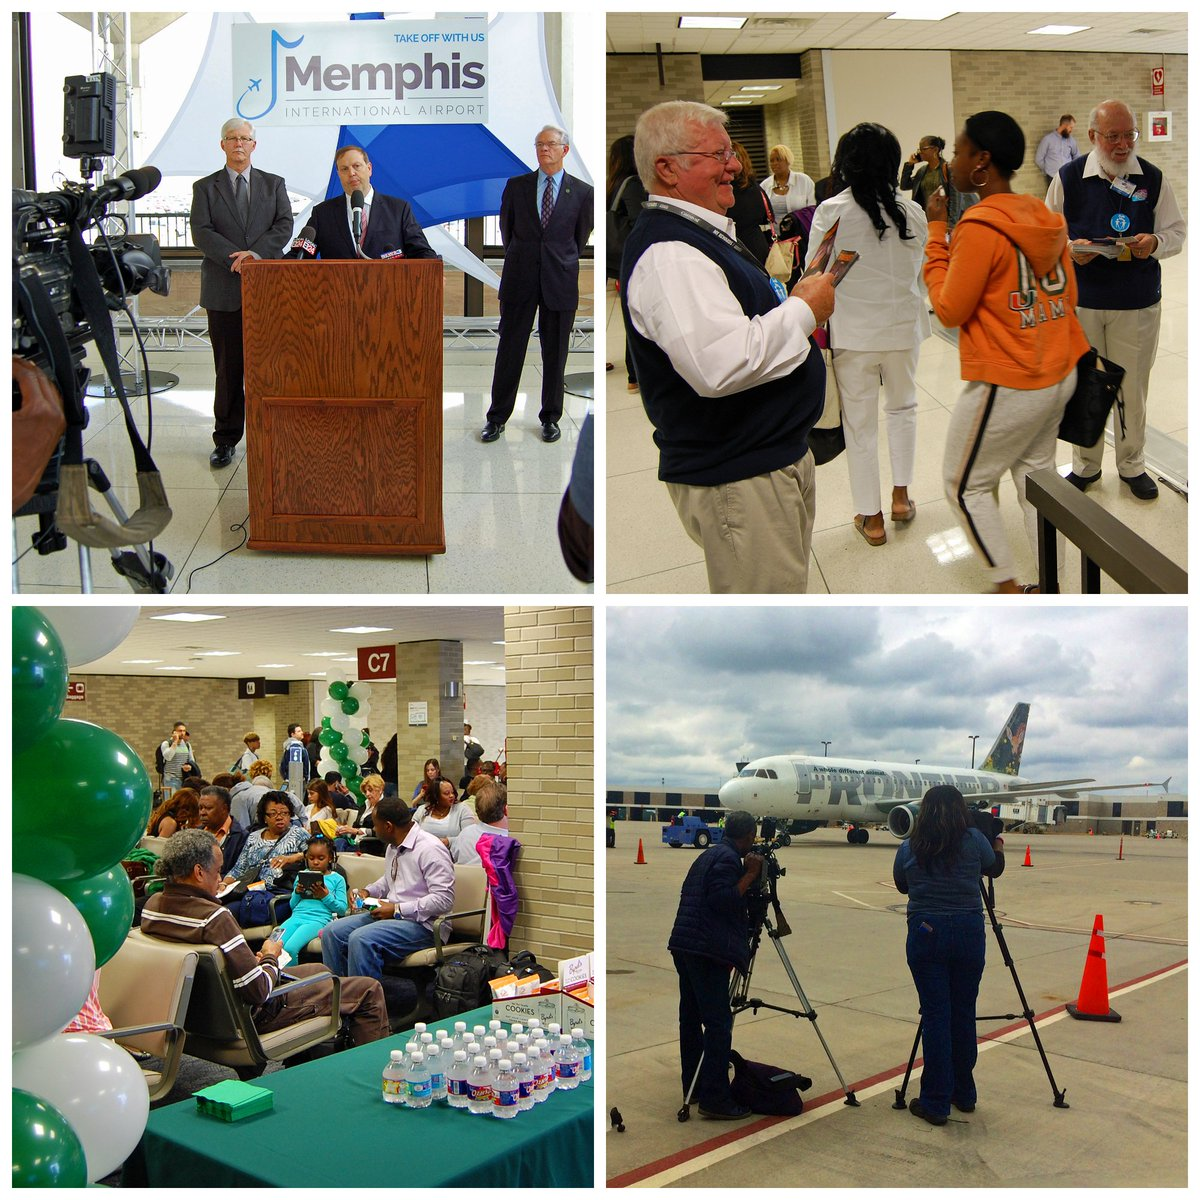 RT @flymemphis: Today @FlyFrontier launched service to Atlanta with some fanfare and a full flight!